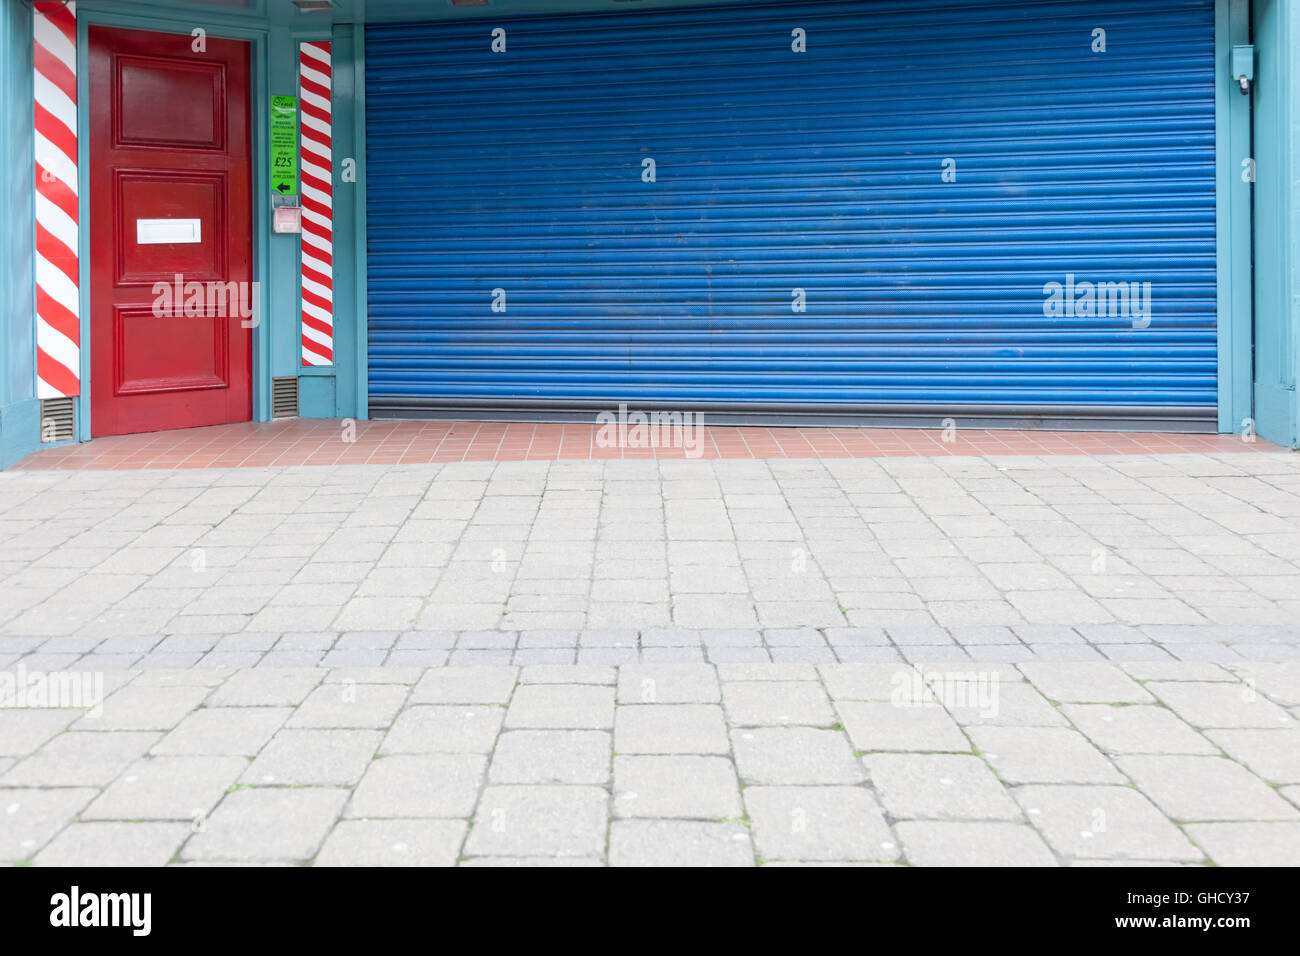 A red door and a blue roller over a barbers shop window - Stock Image